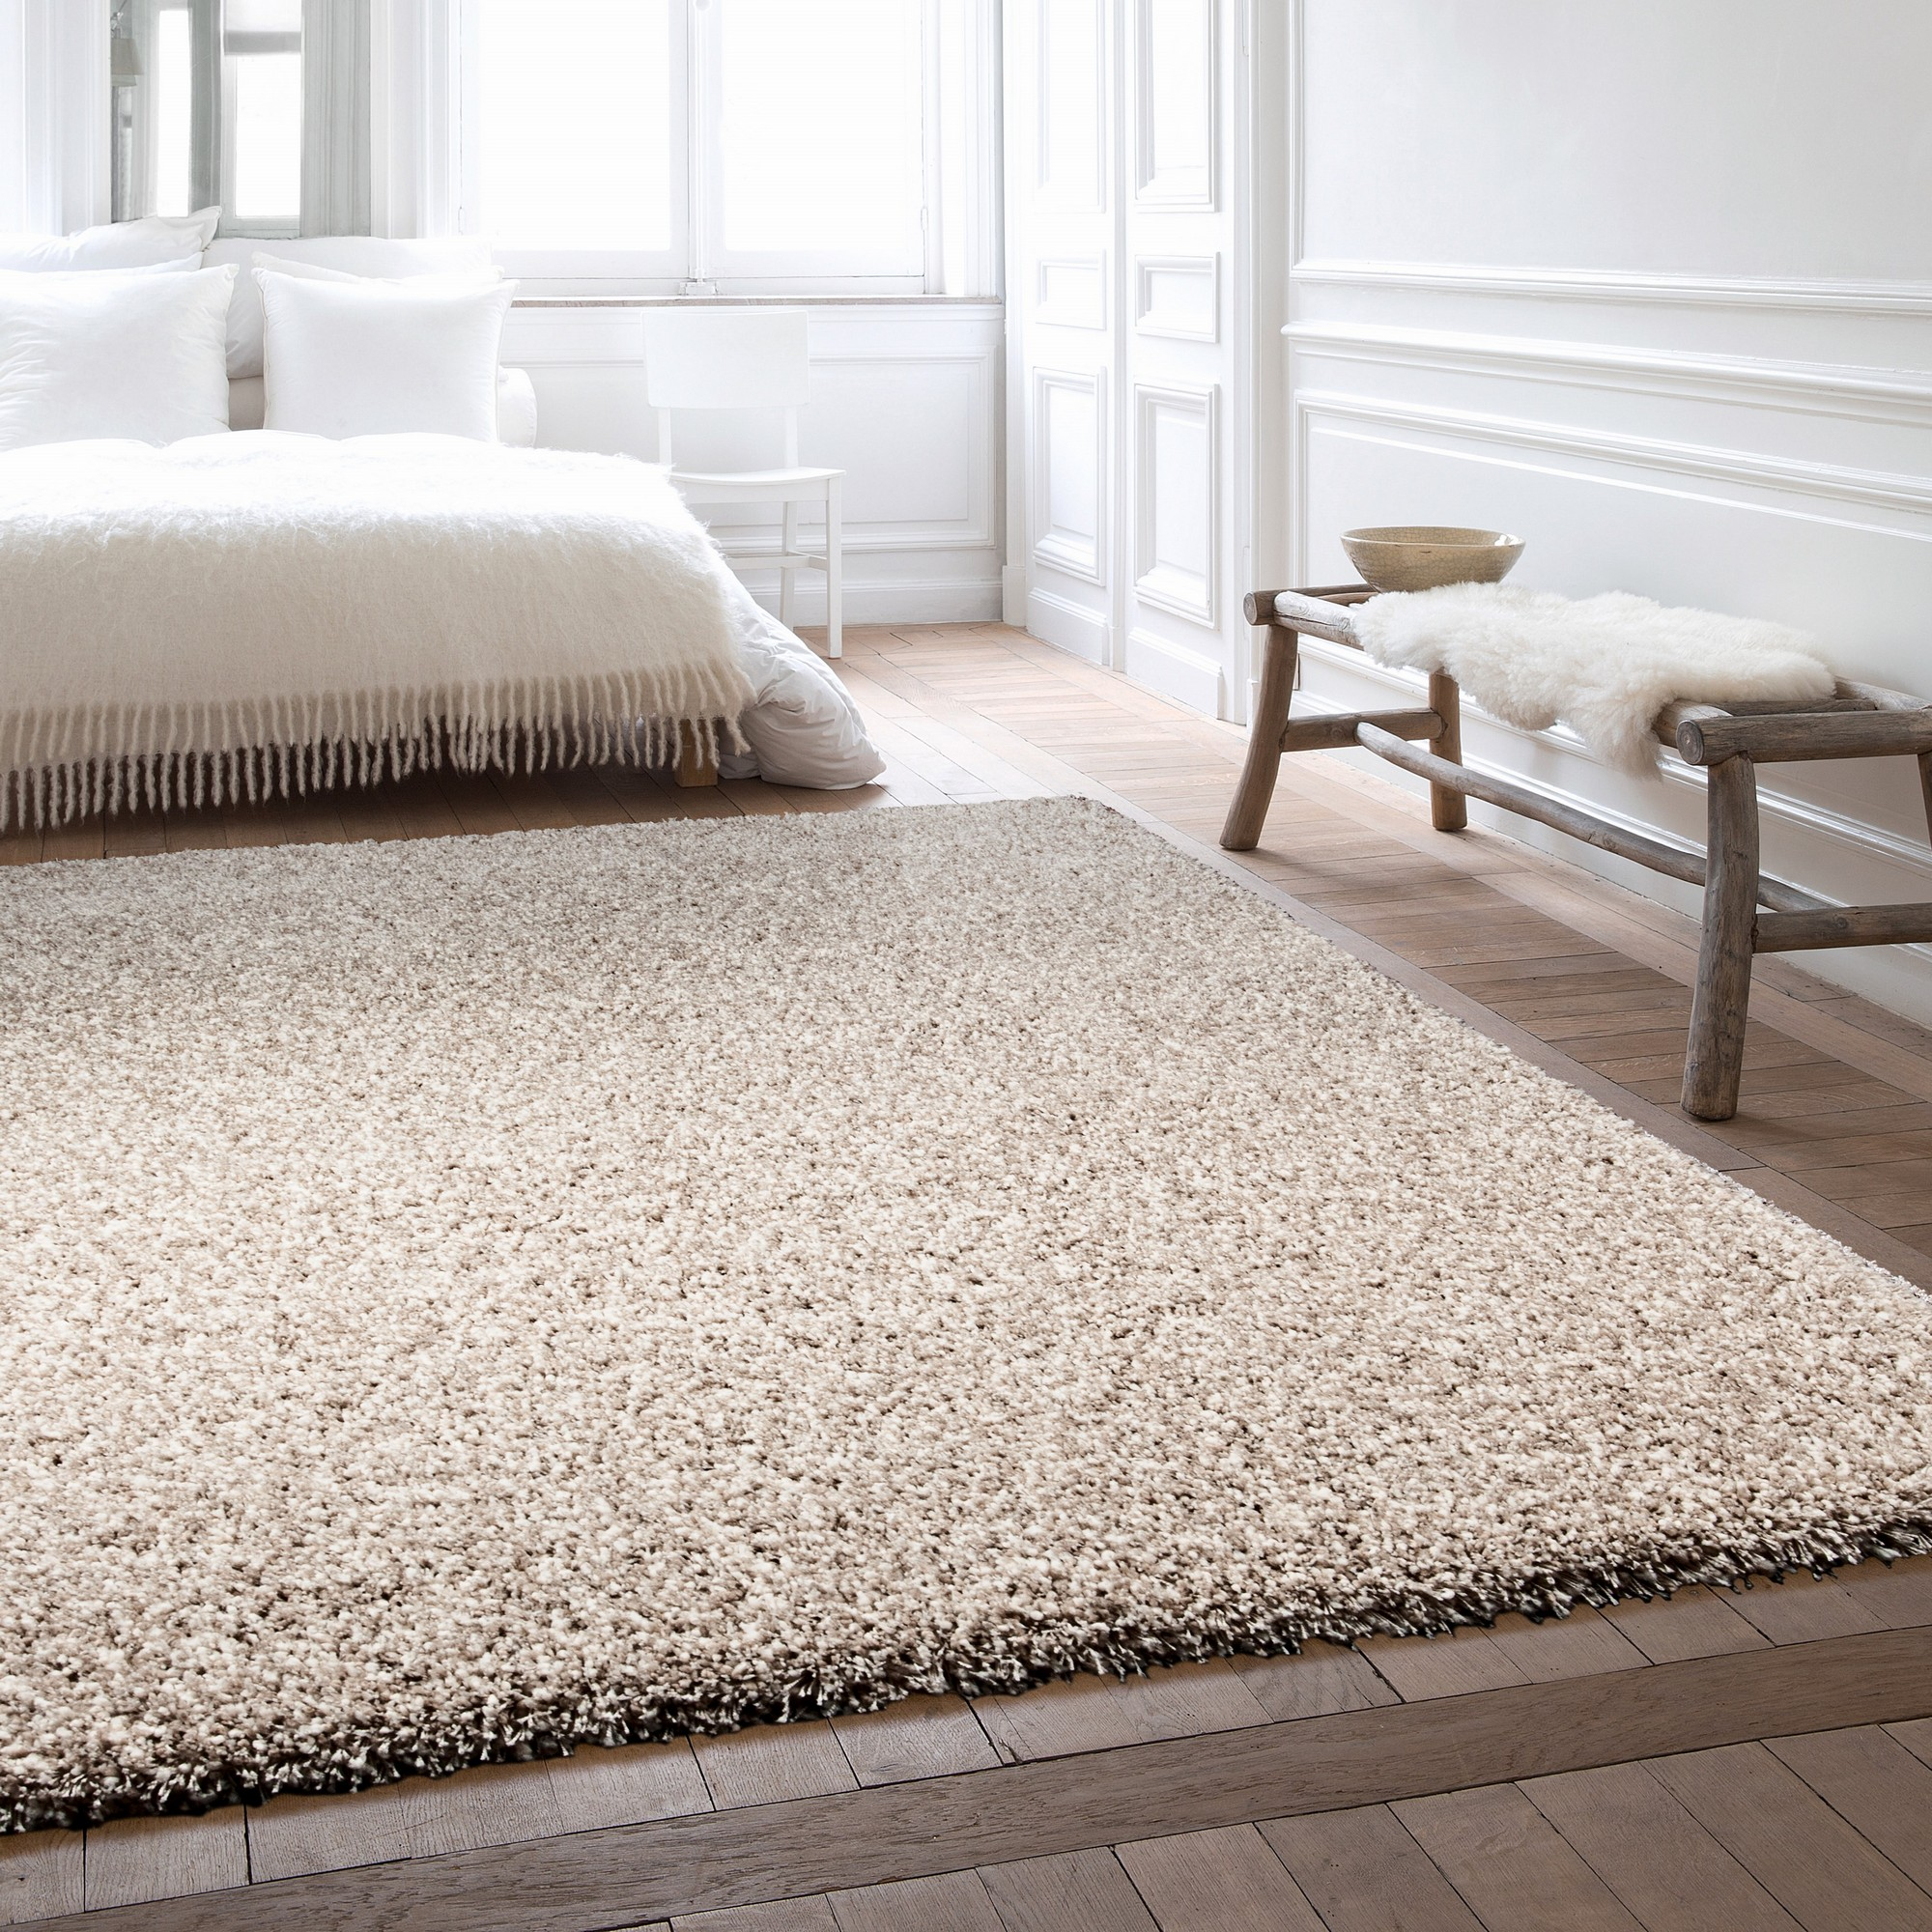 Twilight Rugs 39001 2211 Linen White Mix